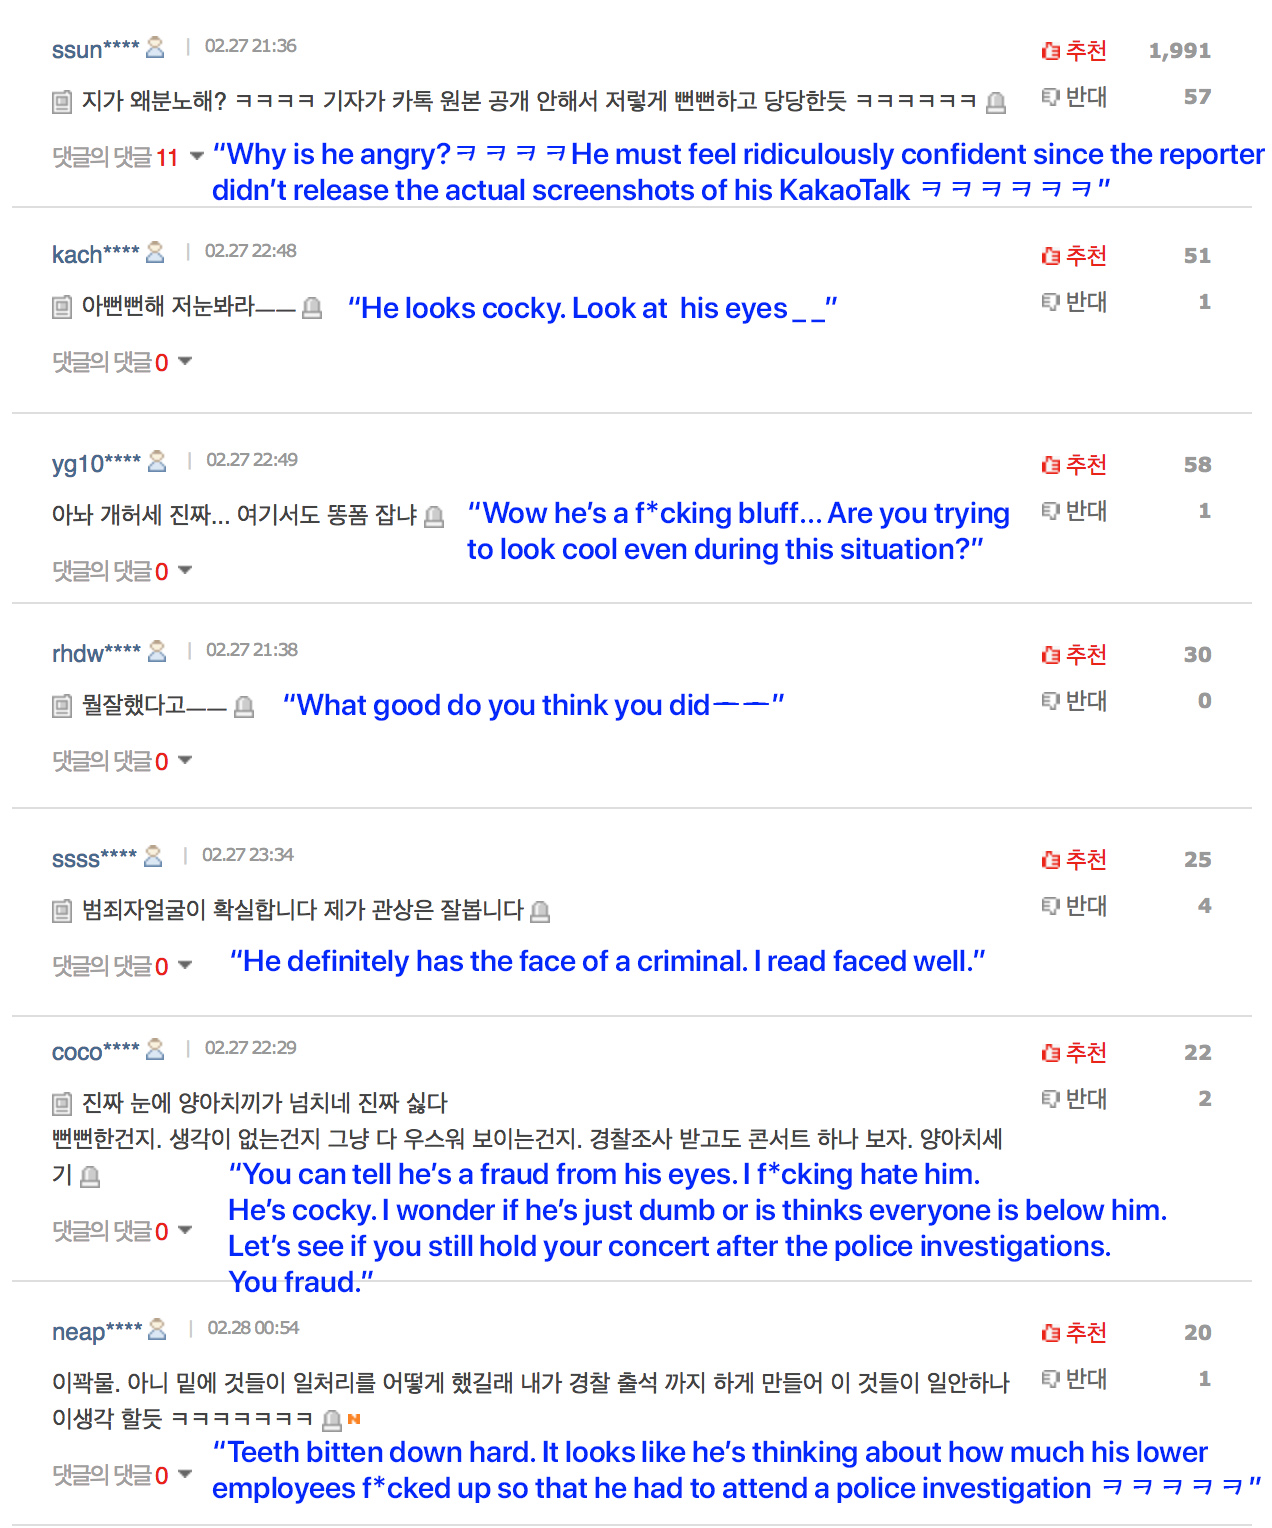 seungri angry news comments